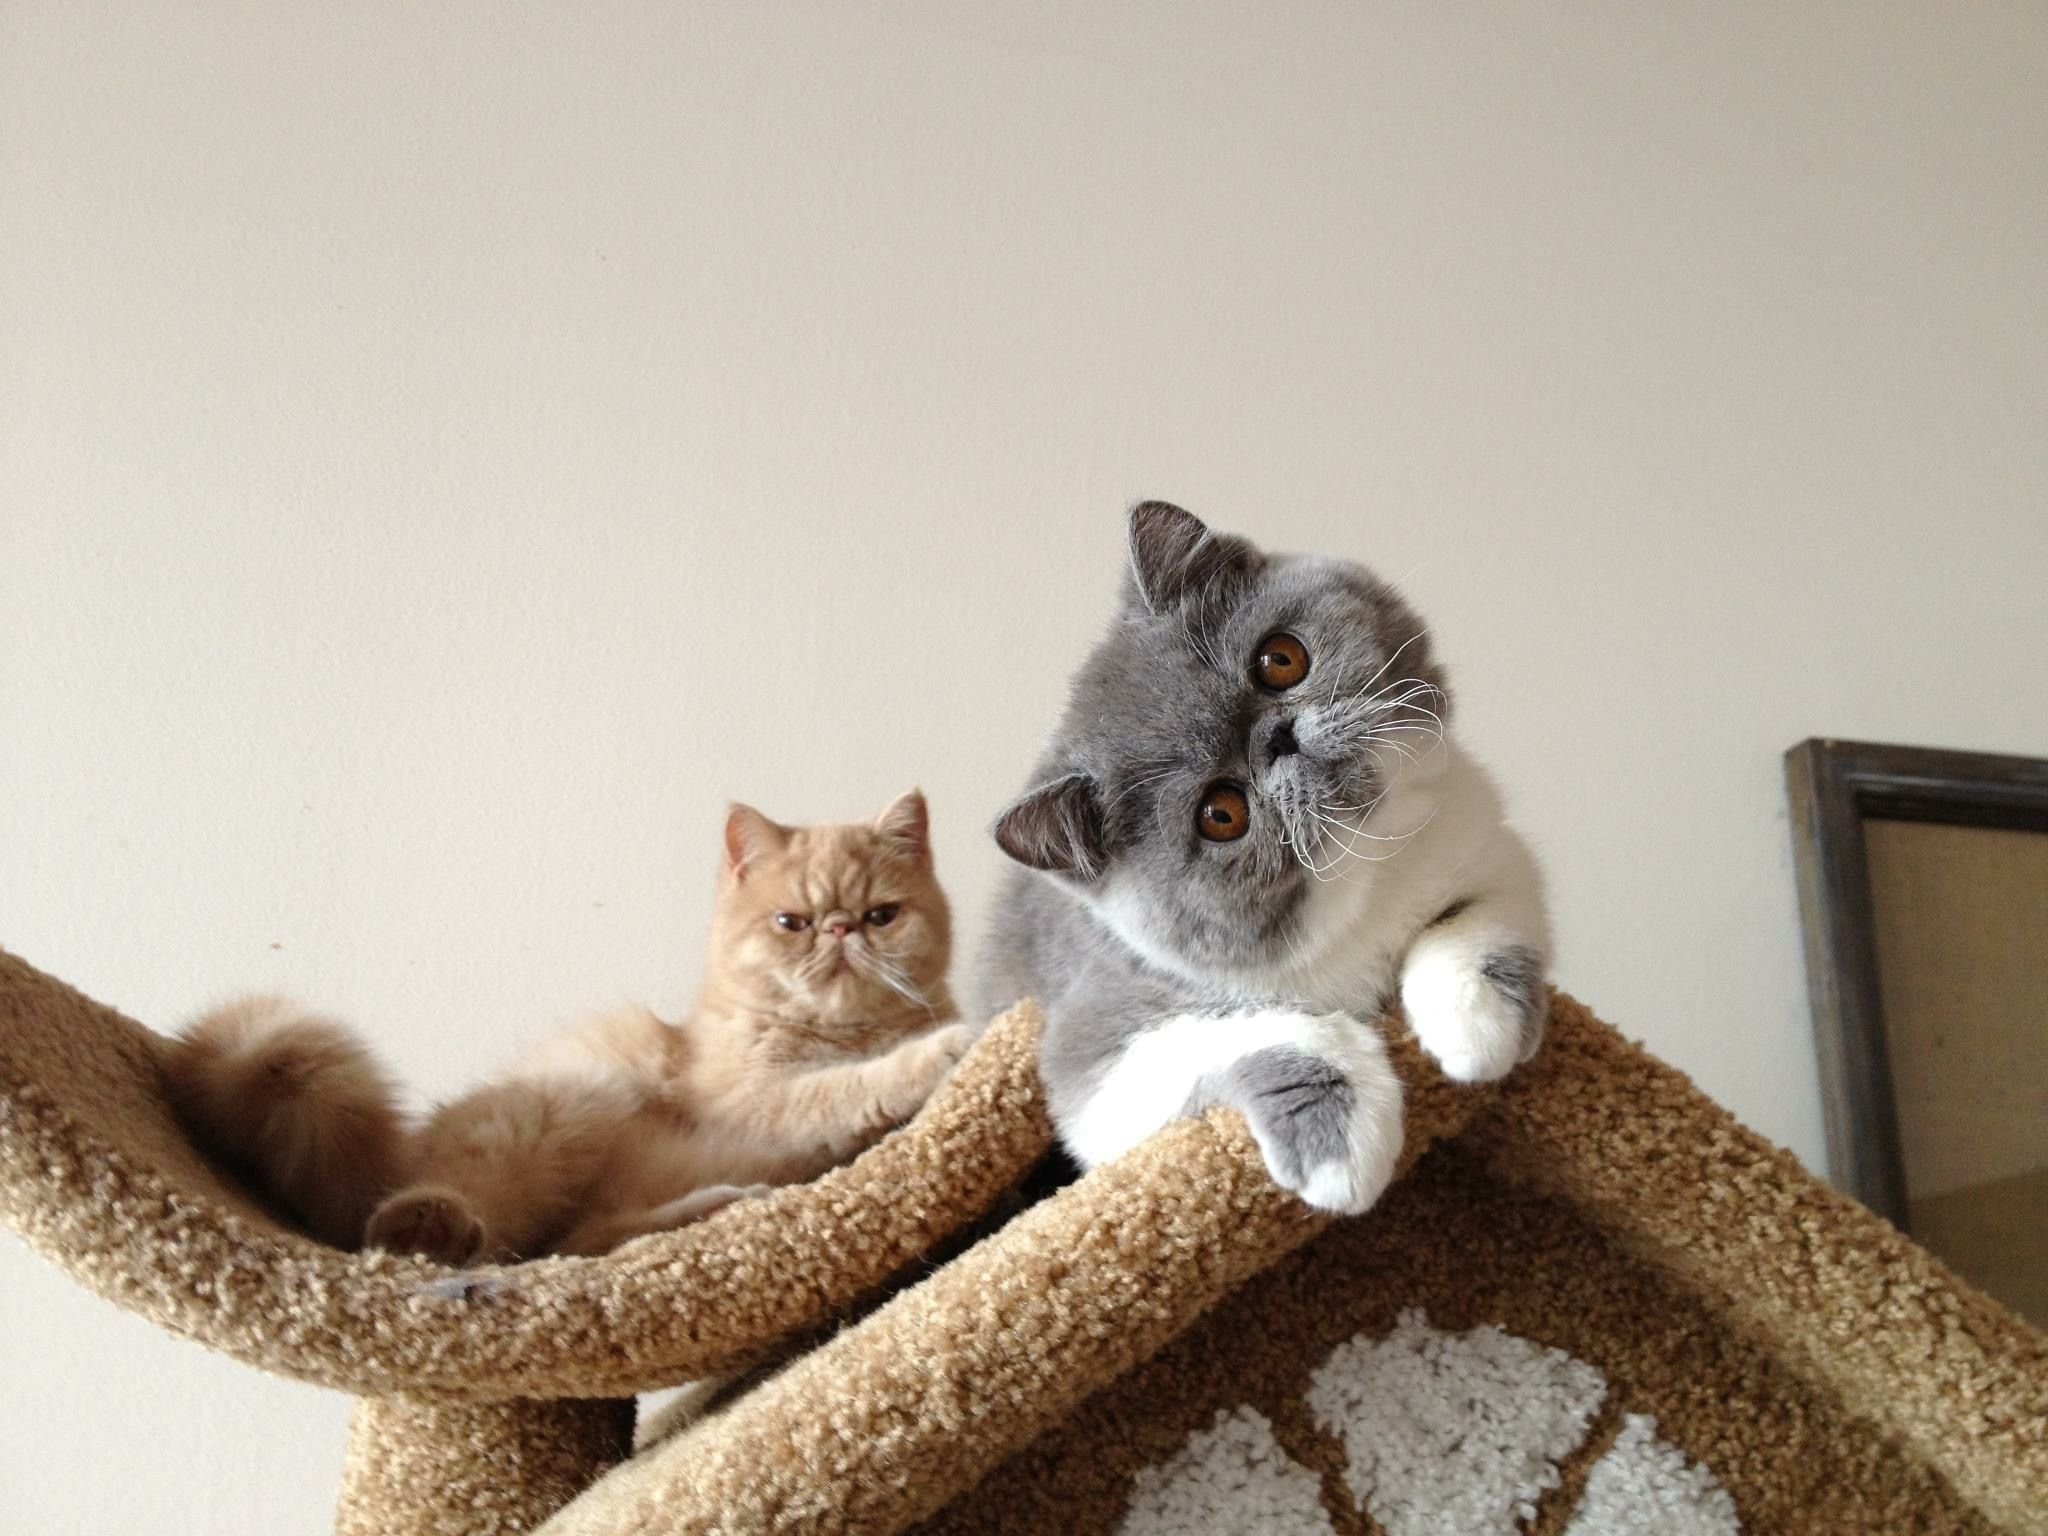 Lola and Bella. Exotic shorthair cats. St. Paul, Minnesota